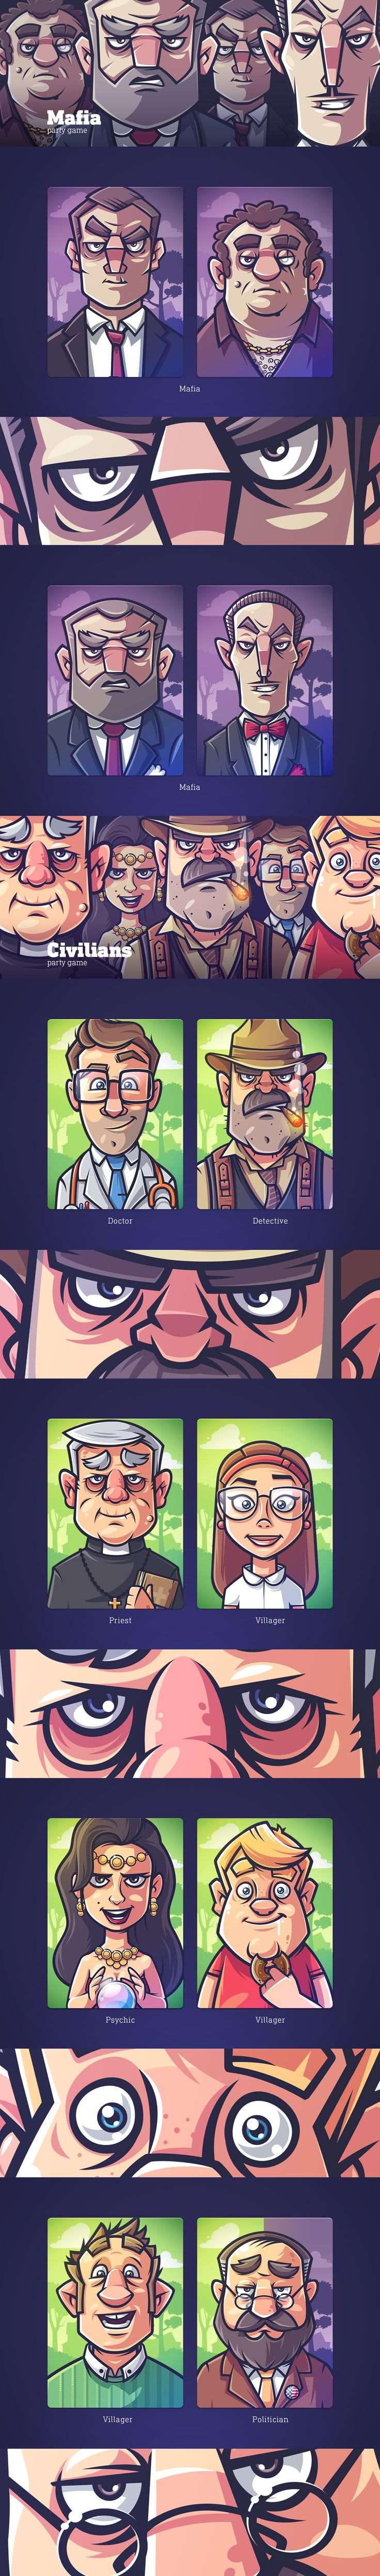 Mafia (party game) on Behance